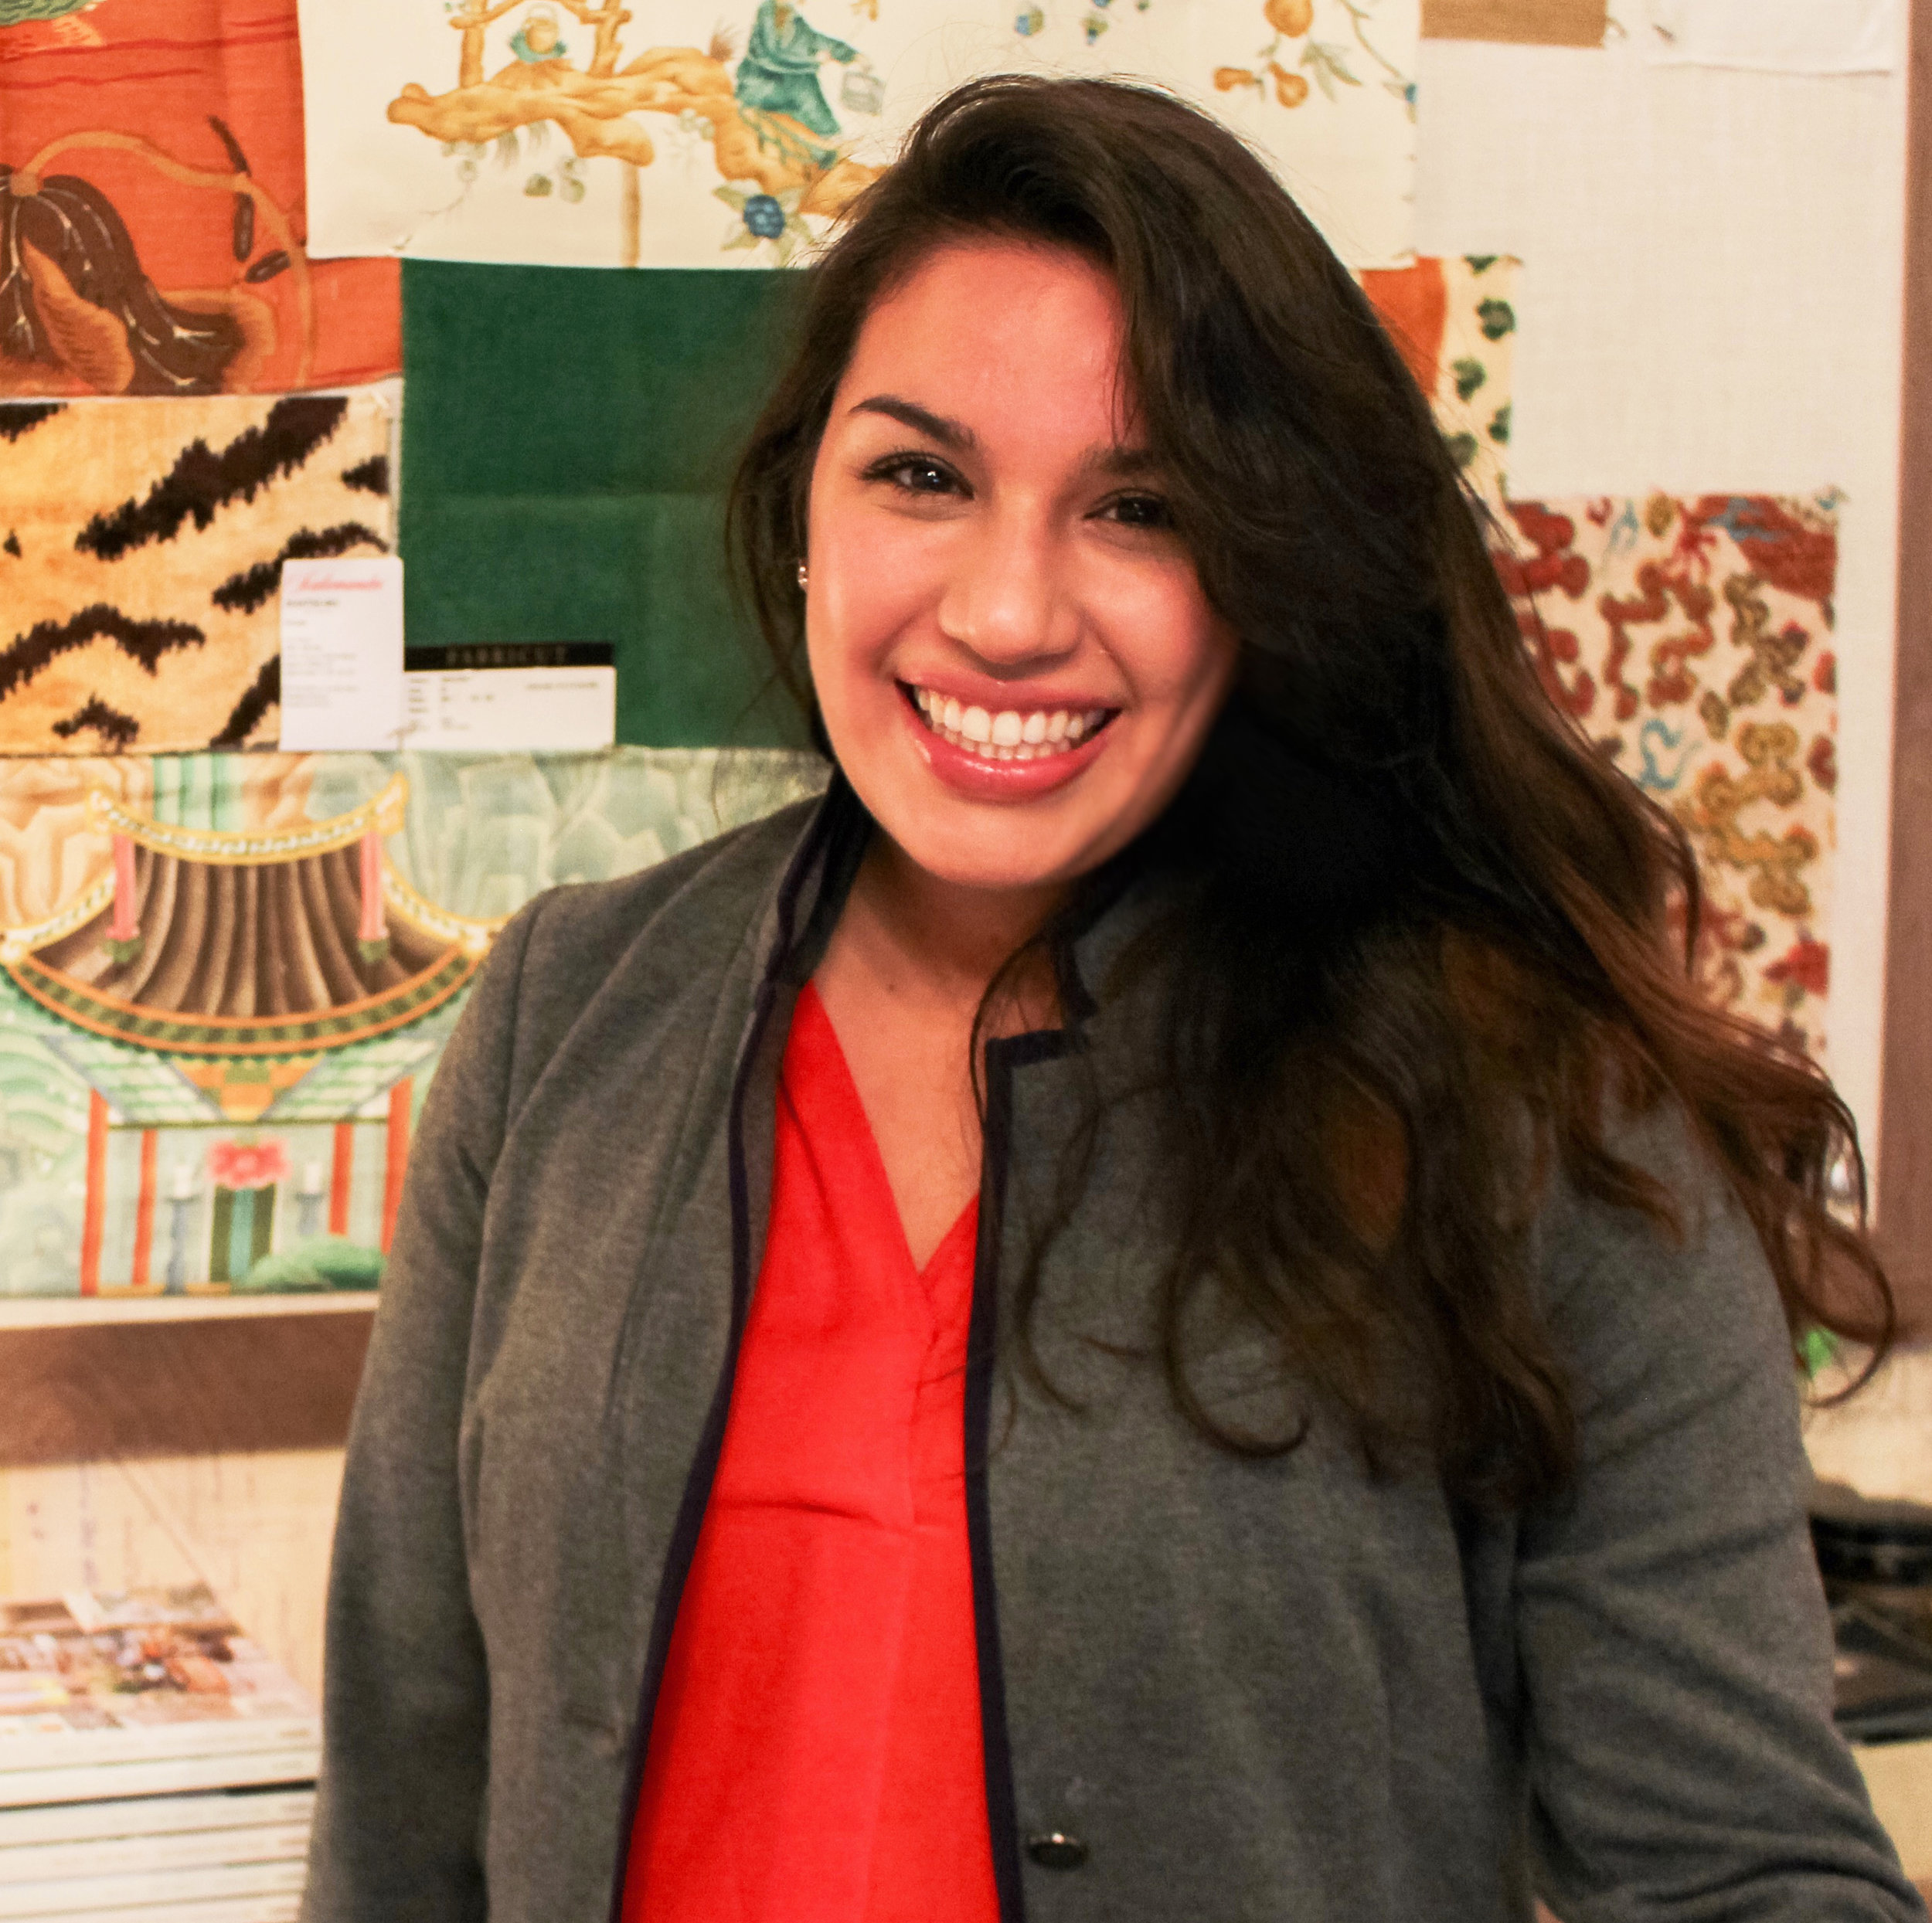 Natalie Sanchez   Office + Procurement Manager  natalie@angelineguidodesign.com  Joined AGD: August 2016  Natalie was born and raised in Mesquite, Texas. She is a very important part of the team, as she acts as support for both the designers and clients by filling the role of office manager and procurement manager. She tends to many of the behind the scenes things that keep projects moving along by implementing all the logistics that go into completing a design. Natalie comes with much knowledge in the industry and what it takes to successfully oversee the design process due to her previous work experience in a very similar position. She is such an integral part of the every day operations of the business and no one can remember what their work life at AGD was like before she came on board. Literally, Angeline couldn't make it through a week without Natalie. She is the office mom that keeps everyone from falling apart.   Natalie lives in a suburb of Dallas with her husband, Santiago, and spunky 8-year old daughter, Nadya. They have a handful of dogs and other farm animals that reside on their land with them. They are very active with their church and enjoy spending time together as a family. Fun fact: Natalie's husband works in Angeline's husband, John's, State Farm office. Santiago has contributed immensely to John's success as an agent.